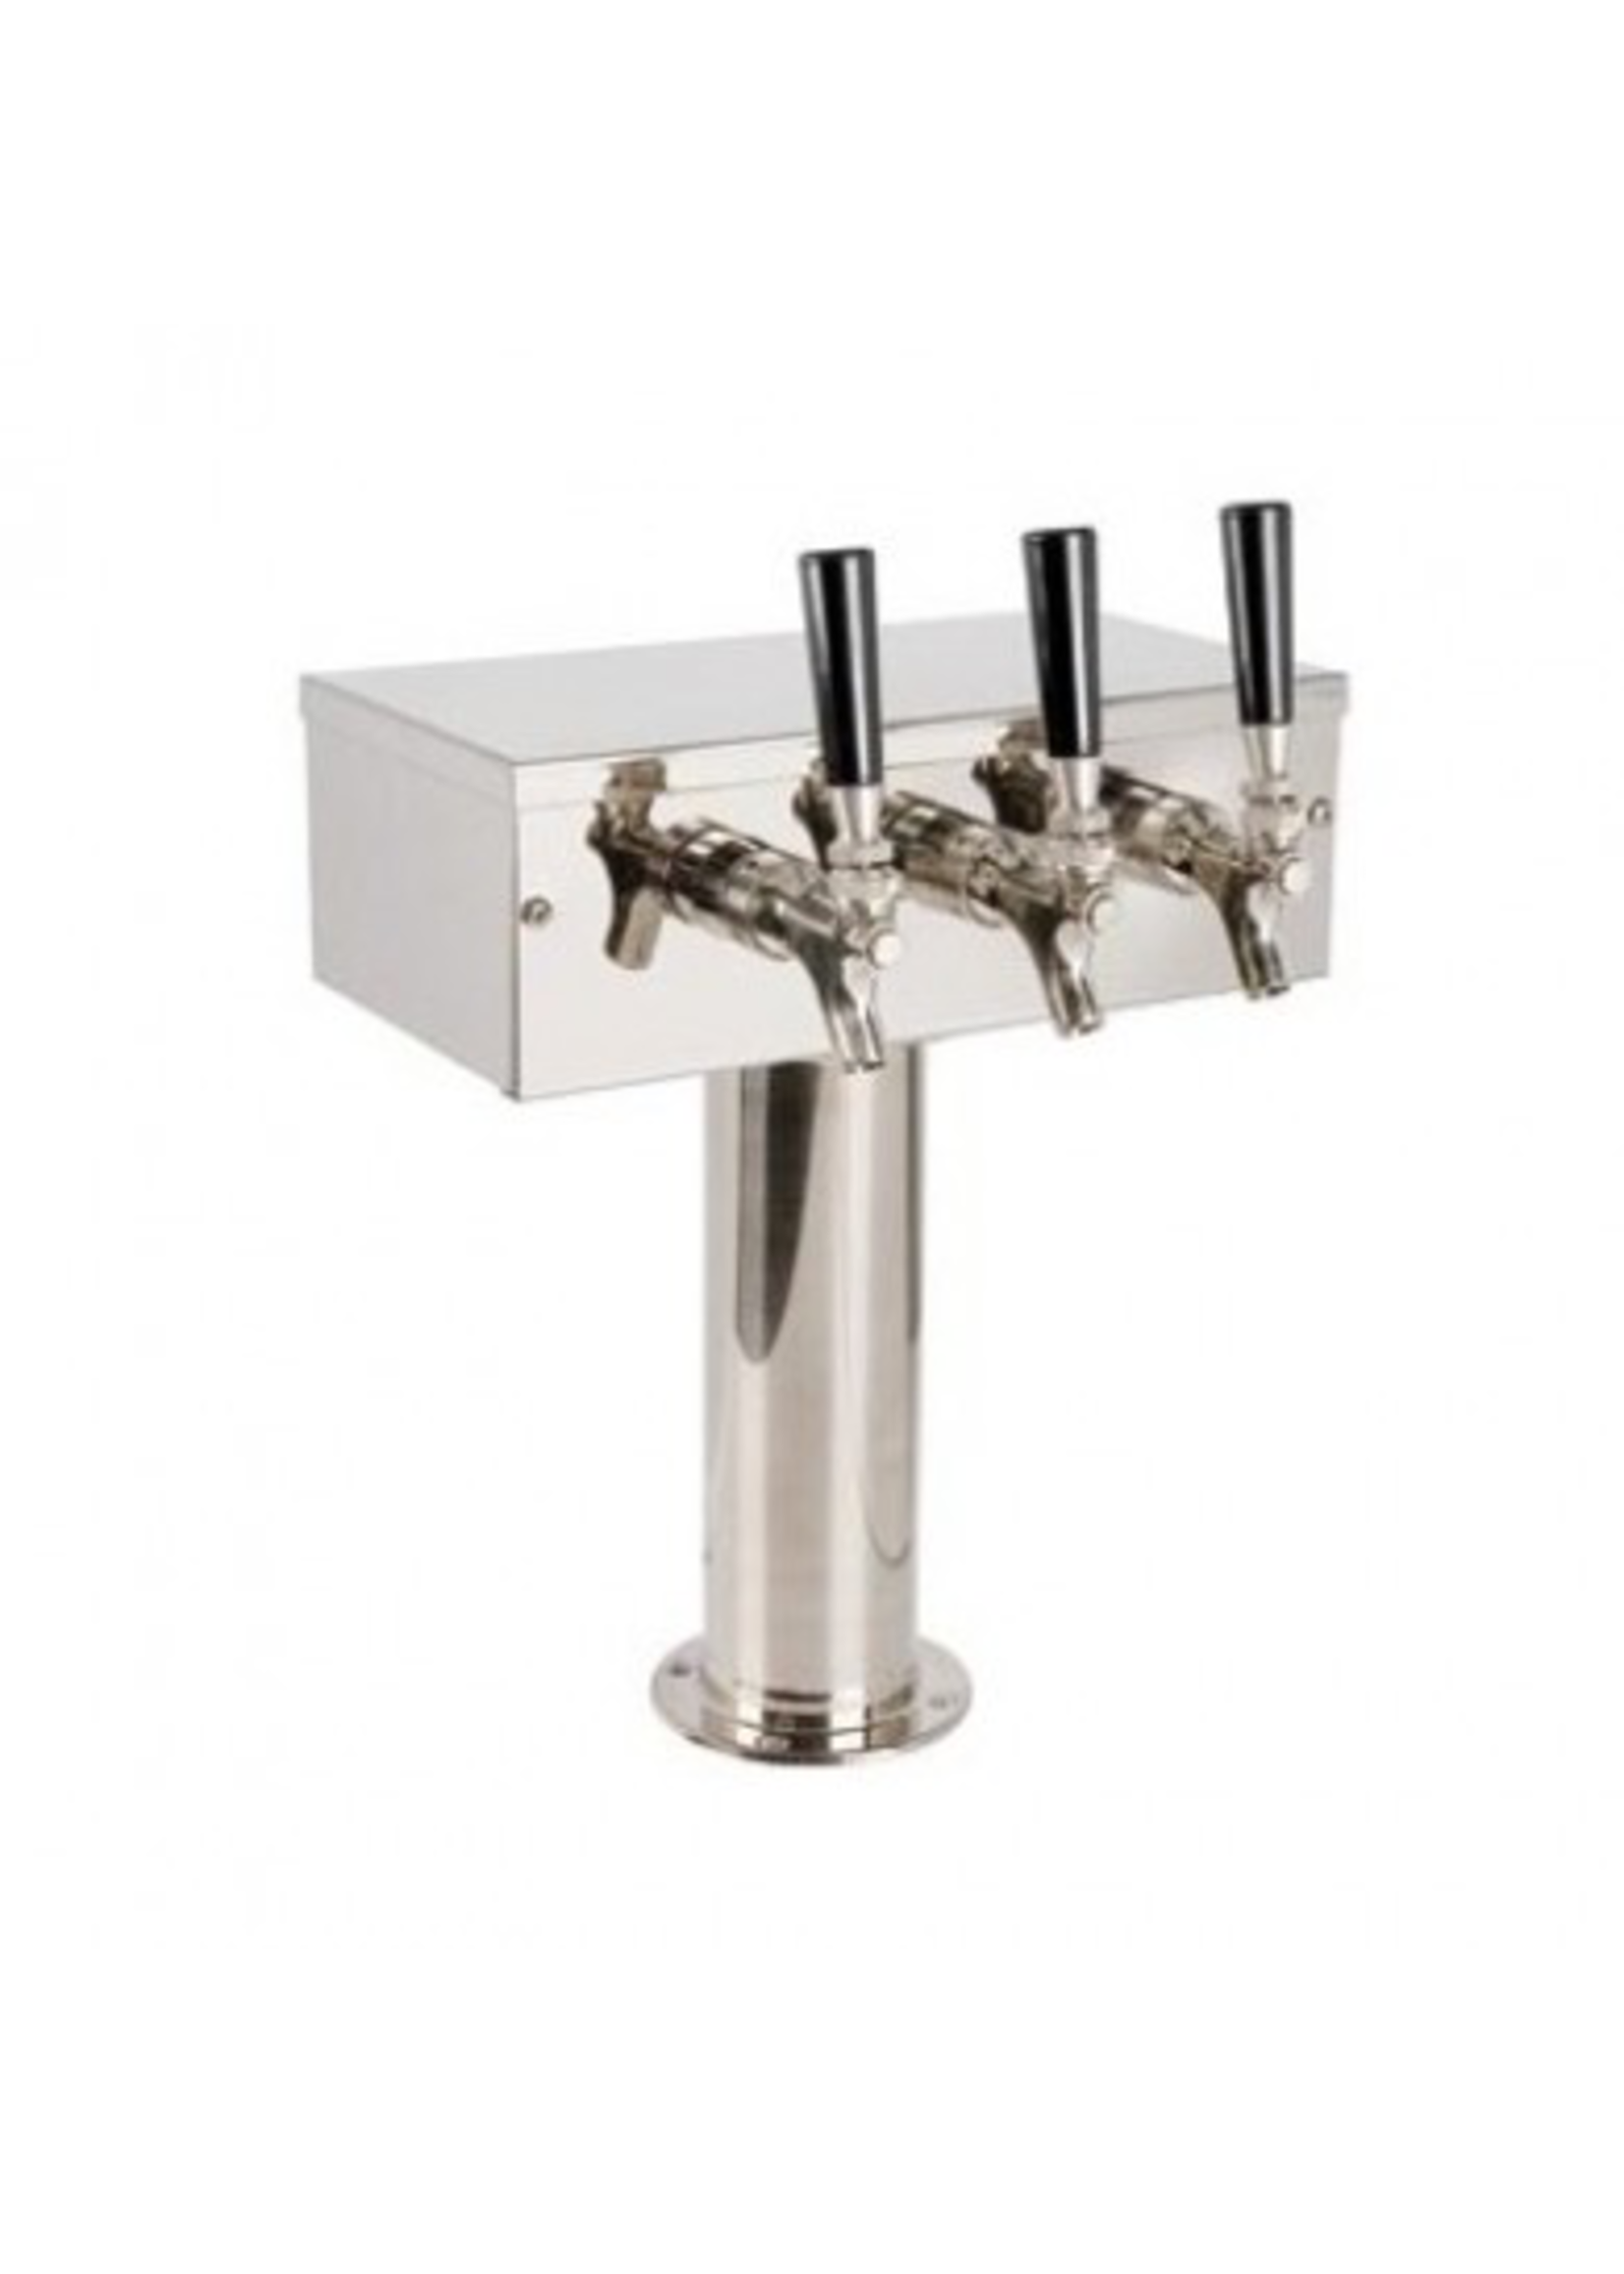 """Foxx """"T"""" Tower - Glycol Cooled - Stainless, 3"""" OD Round x 12"""" Wide - 3 Faucet (Chromed Brass)"""